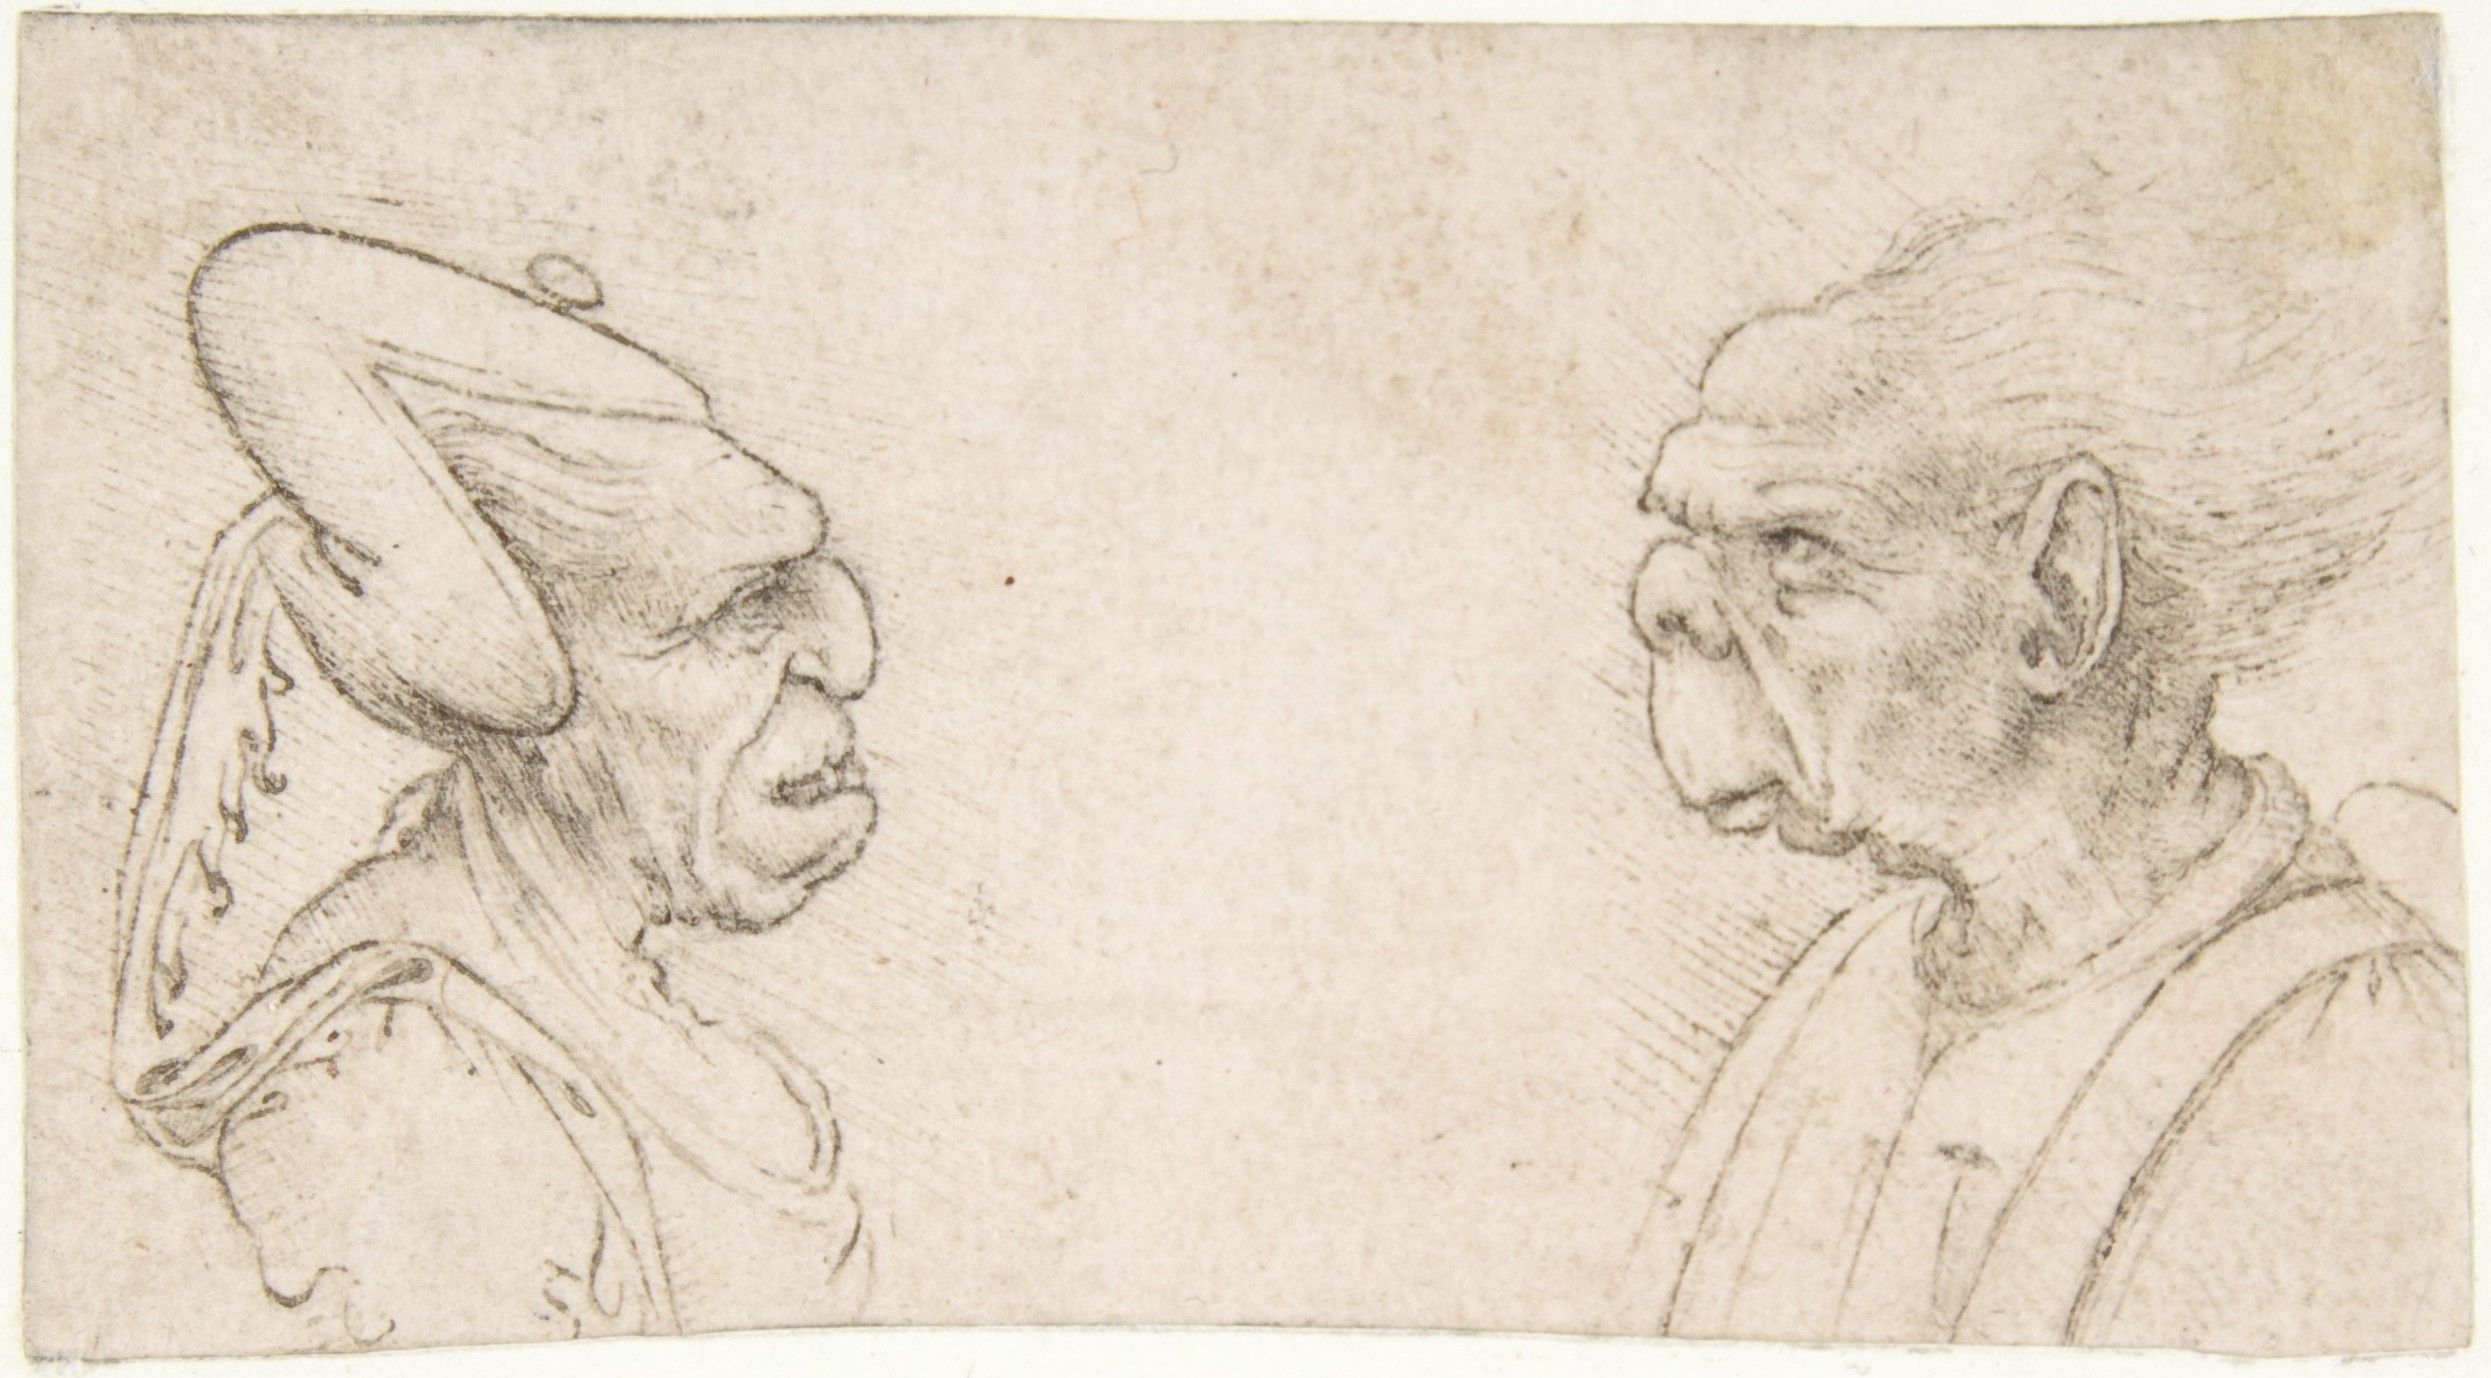 Two Grotesque Heads: Old Woman with an Elaborate Headdress and a Man with Large Ears attributed to Francesco Melzi (Italian, Milan 1491/93–ca. 1570 Vaprio d'Adda). Date: 1491/93–1570